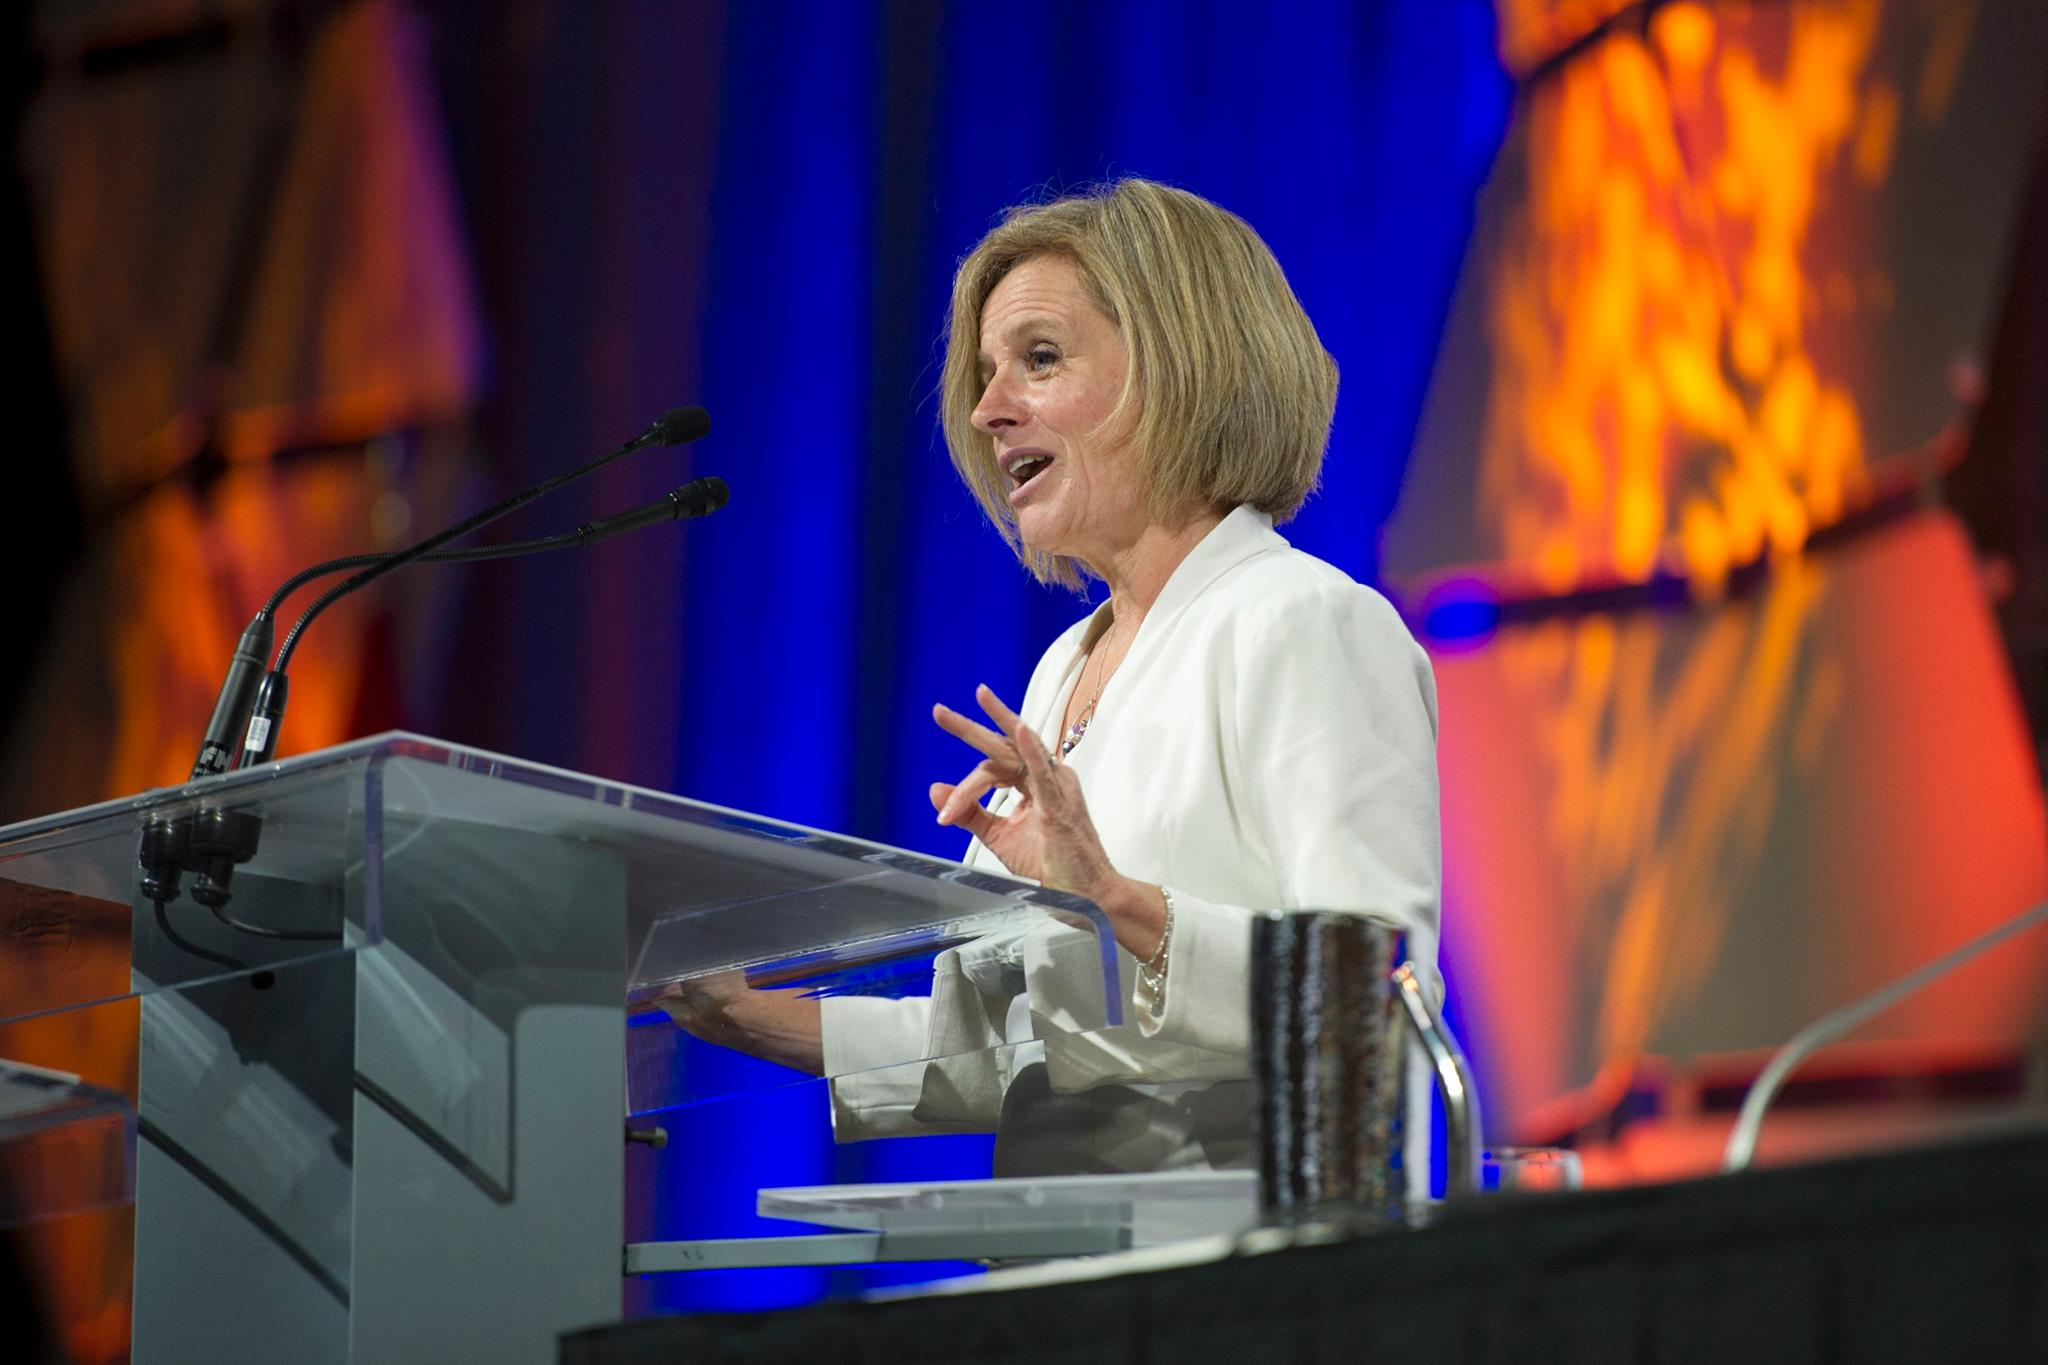 Alberta is willing to accept more refugees if the federal government decides to lift a cap on how many can come to Canada, says Premier Rachel Notley (Pictured). (Photo: Rachel Notley/ Facebook)